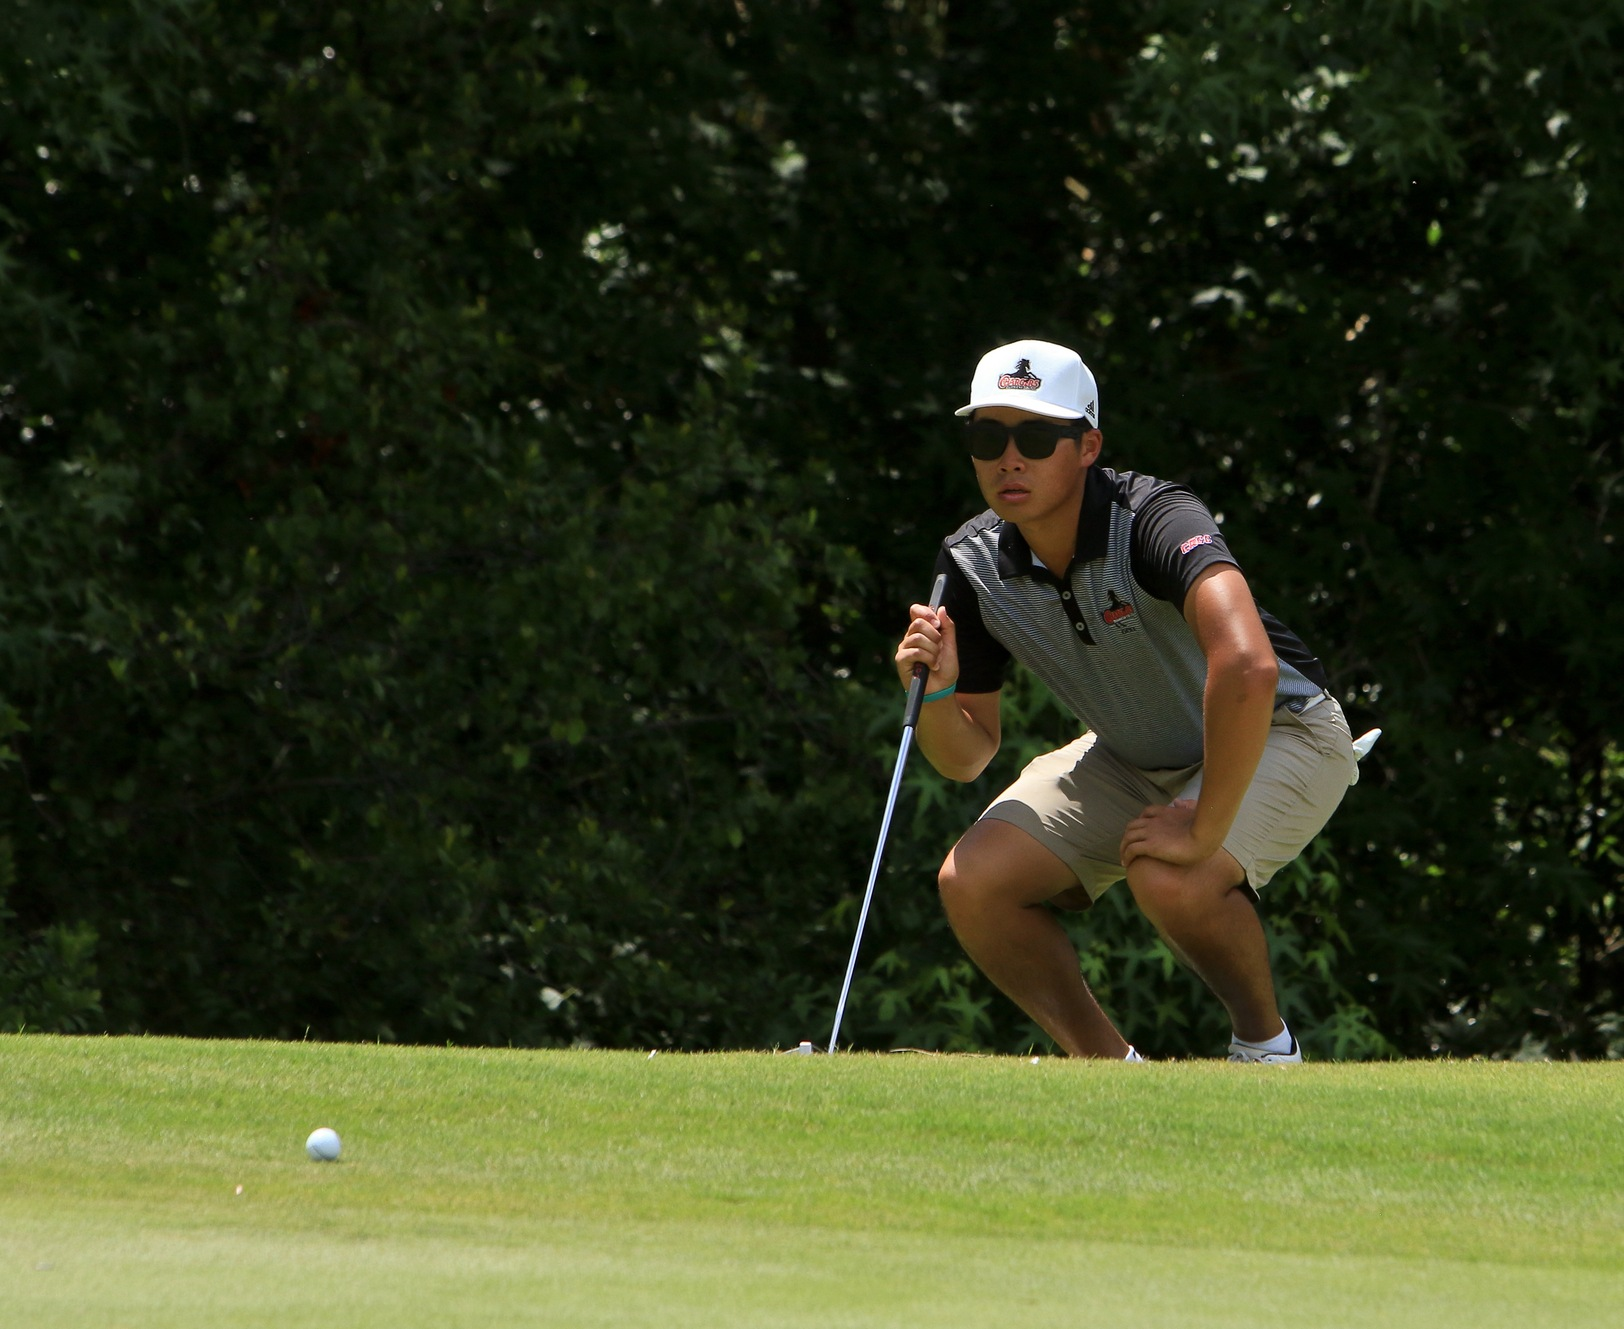 CHARGERS IMPROVE ON DAY TWO OF NCAA DIVISION II GOLF CHAMPIONSHIPS